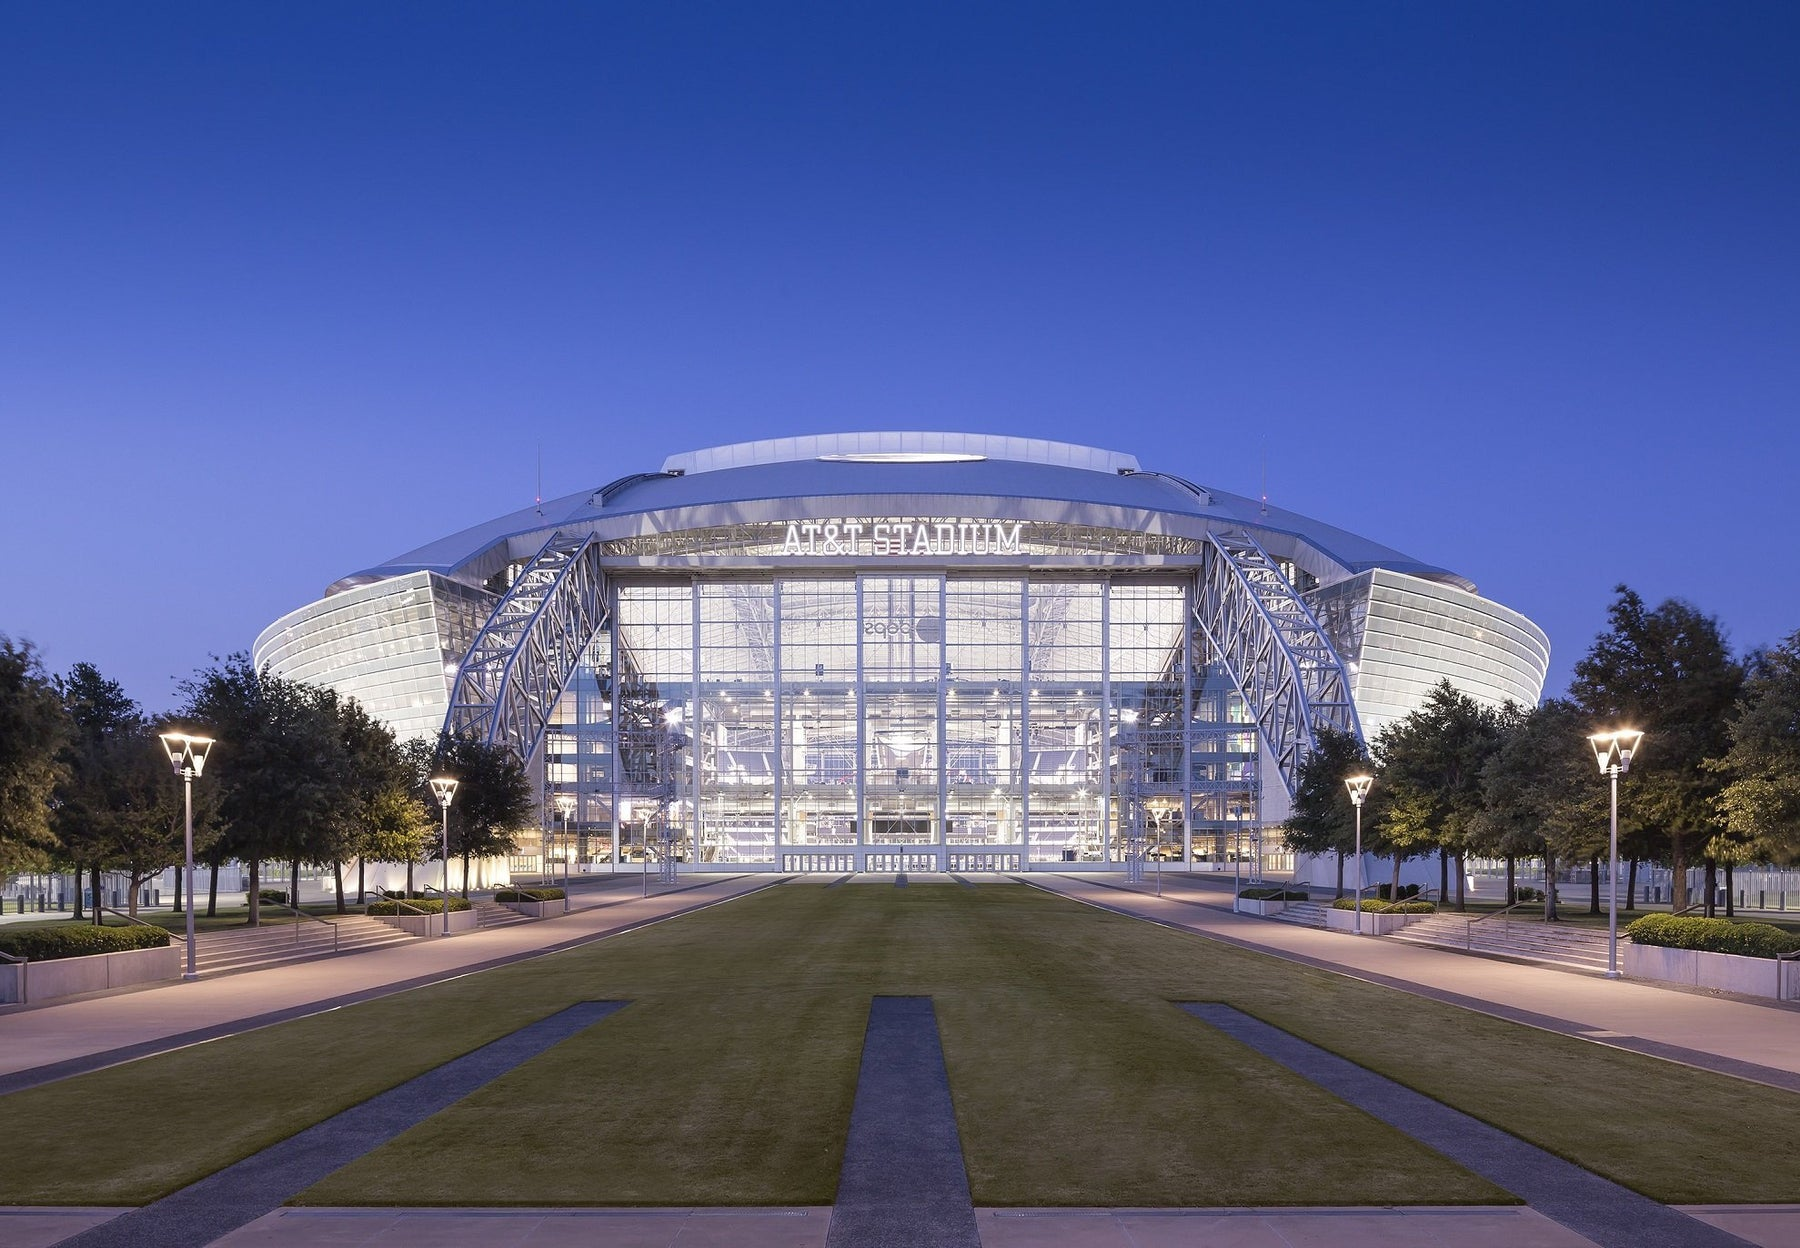 How to Watch the Dallas Cowboys Play at AT&T Stadium